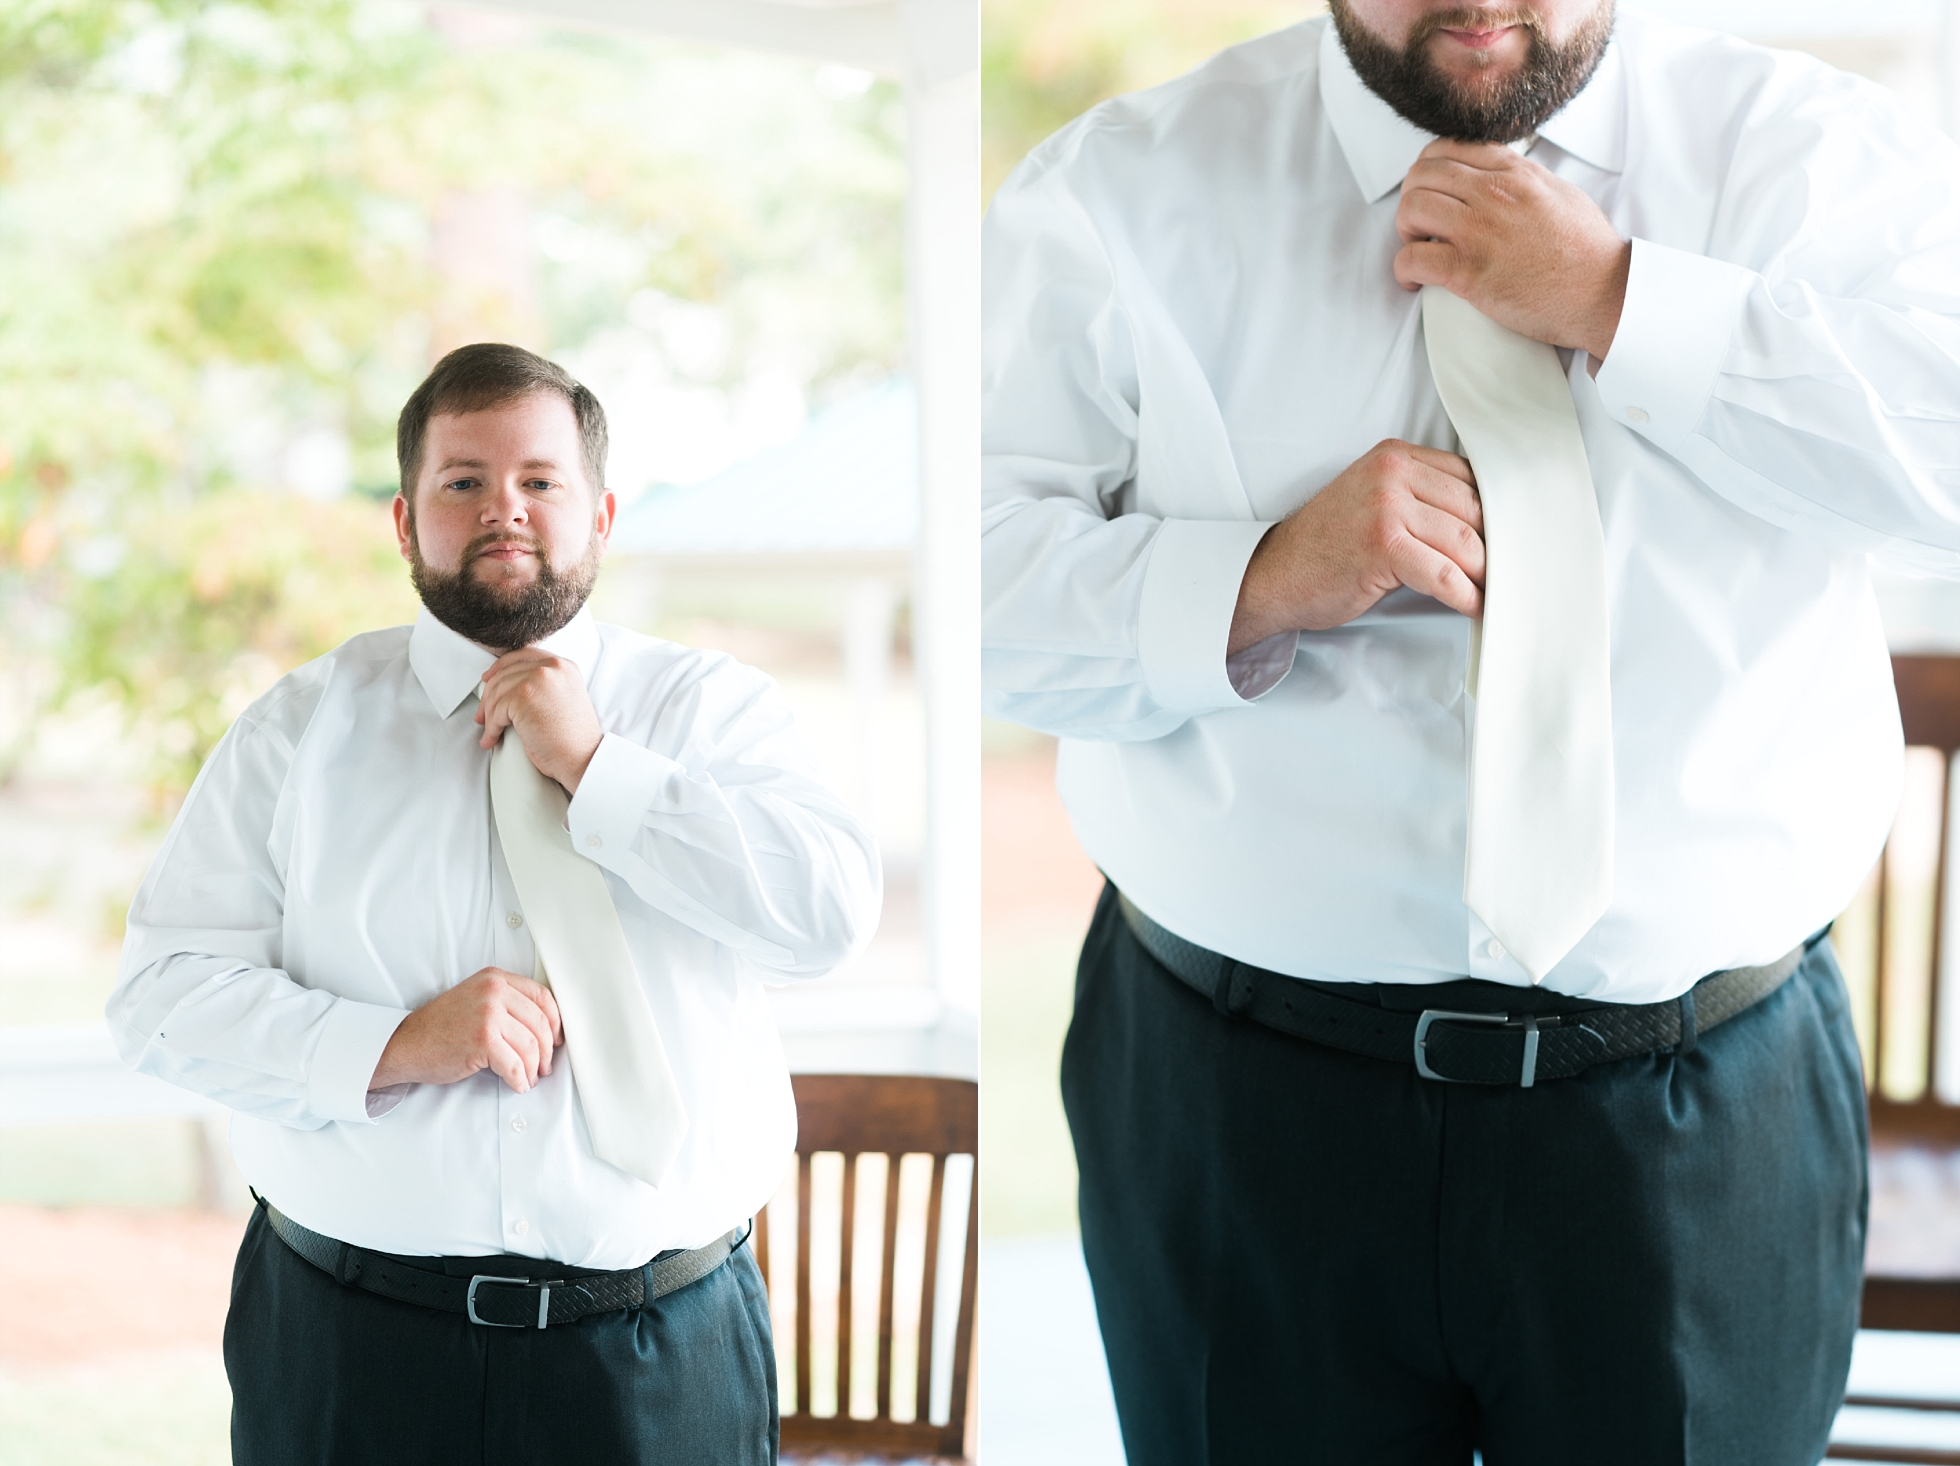 Groom getting ready| Kyle & Erin | Scarbrough Wedding | Children's Harbor | Laura Wilkerson Photography